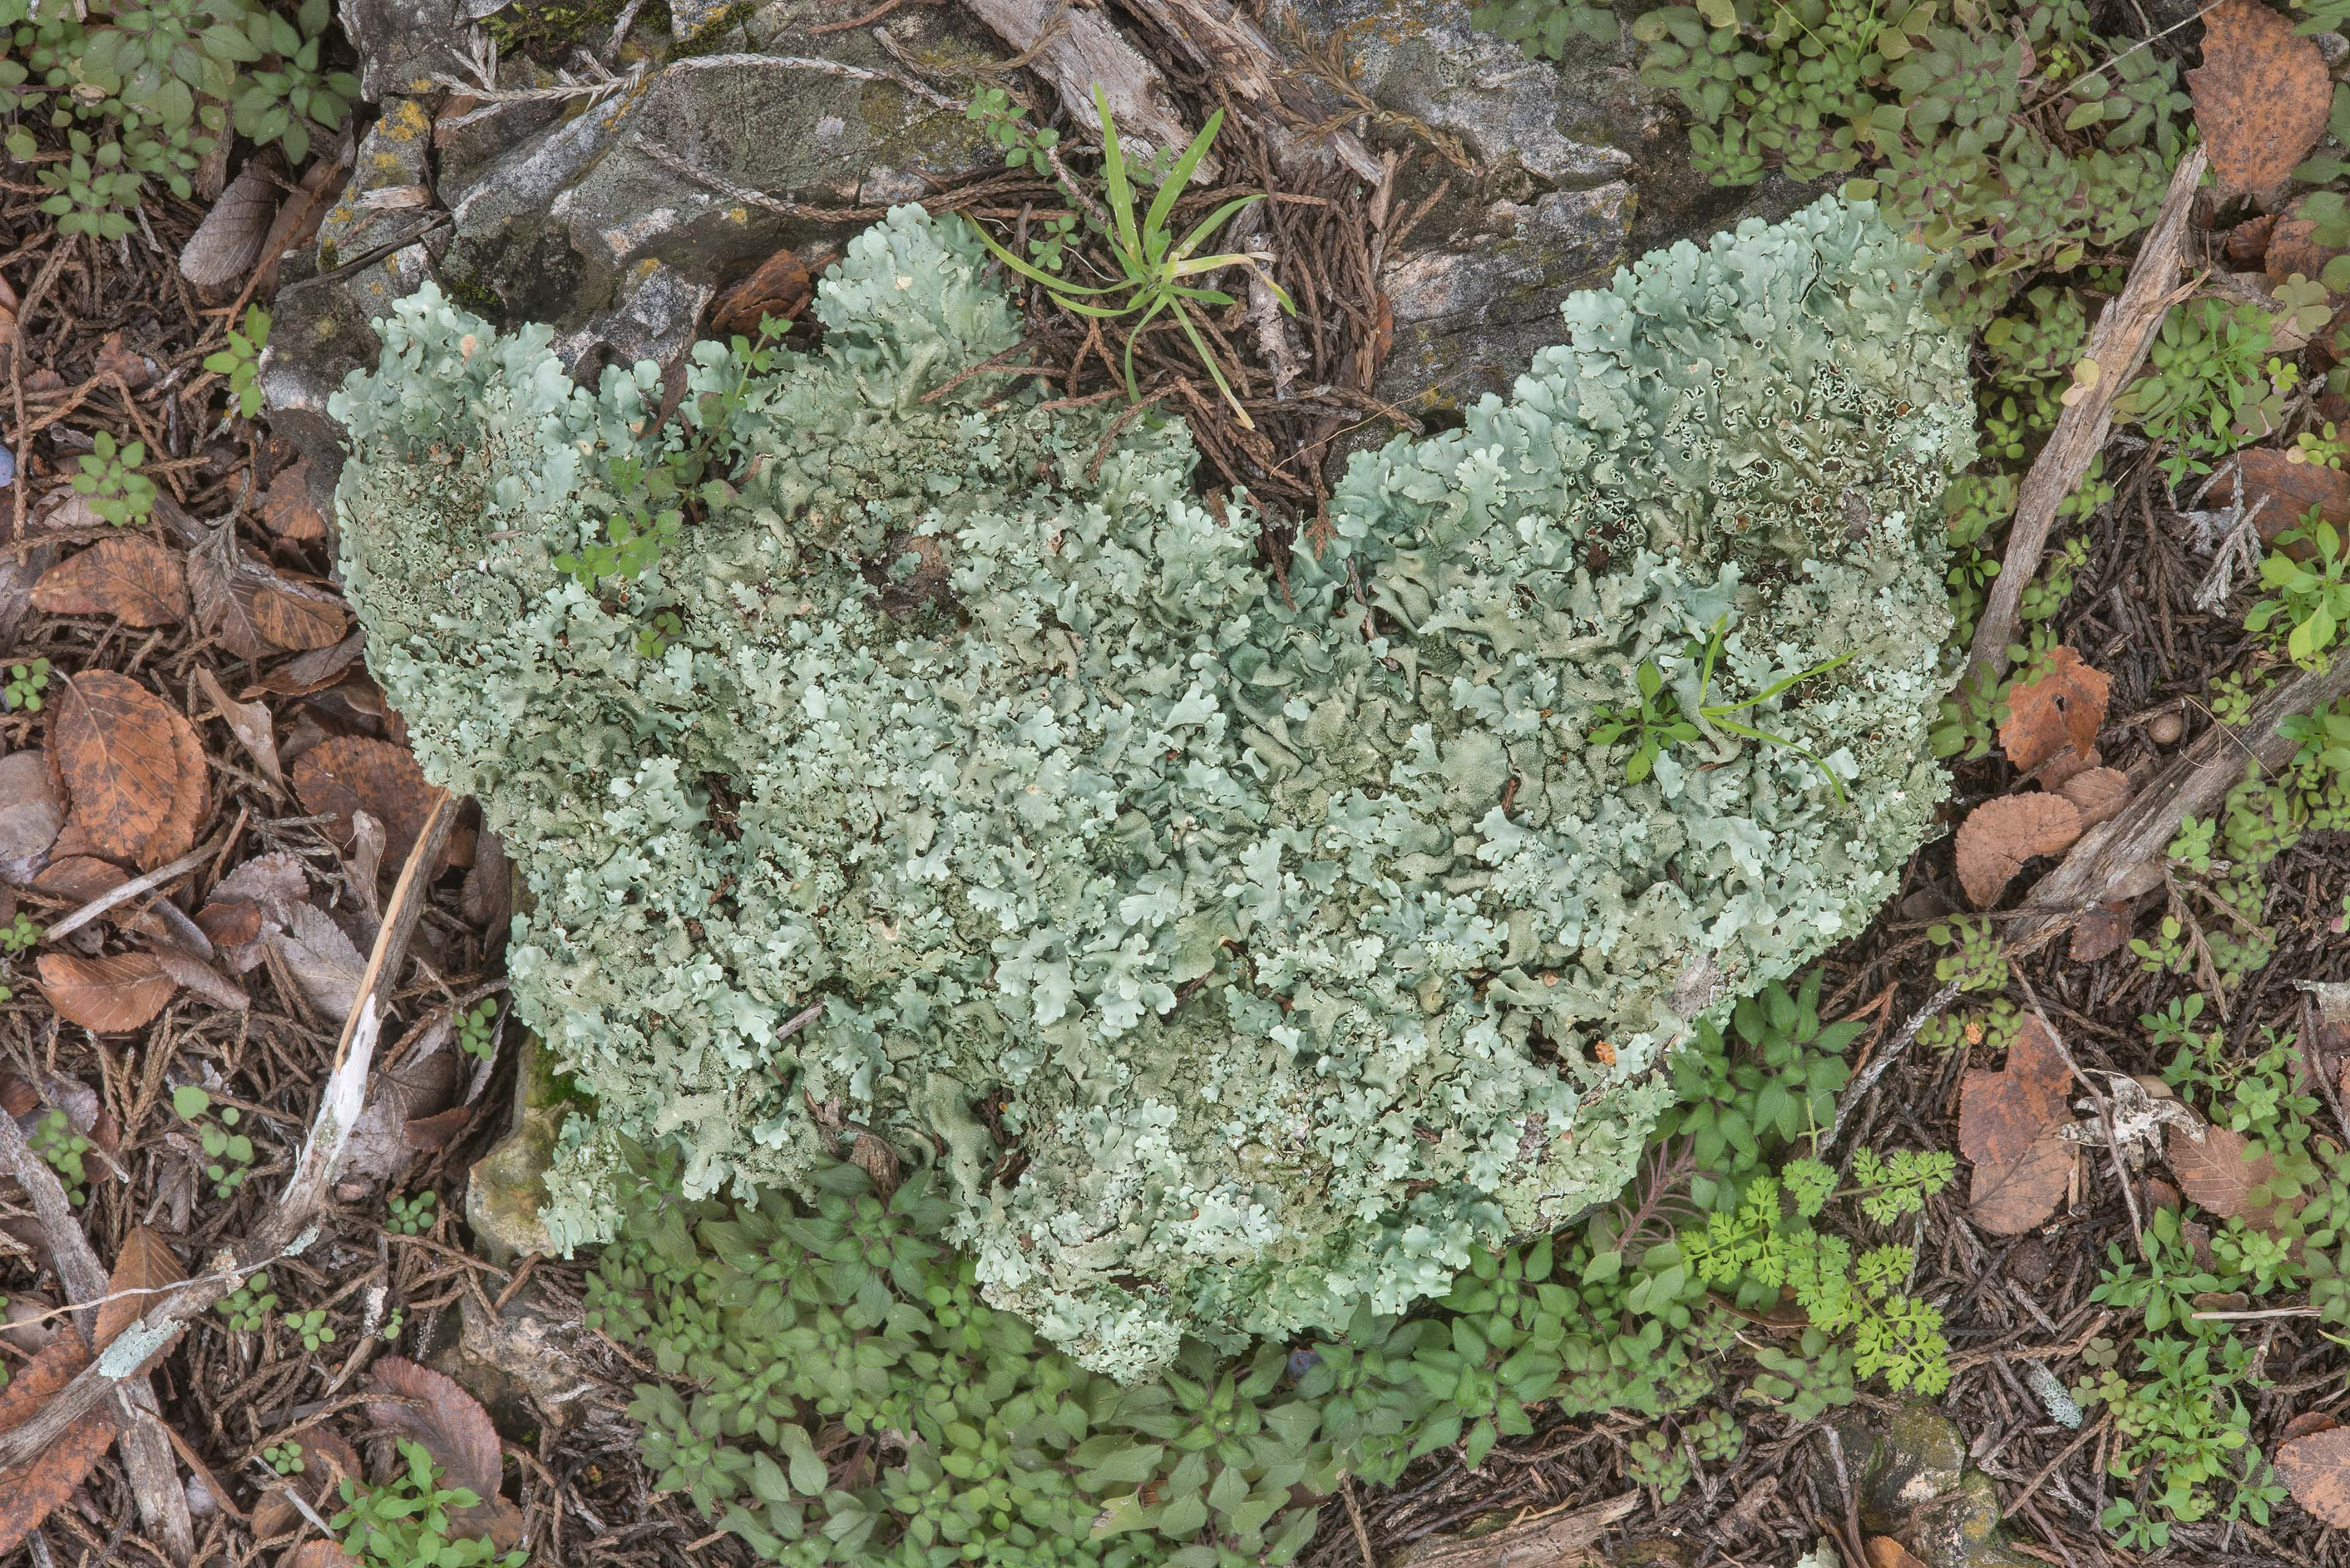 Rock shield lichen (Xanthoparmelia) on a...Falls State Park. Johnson City, Texas